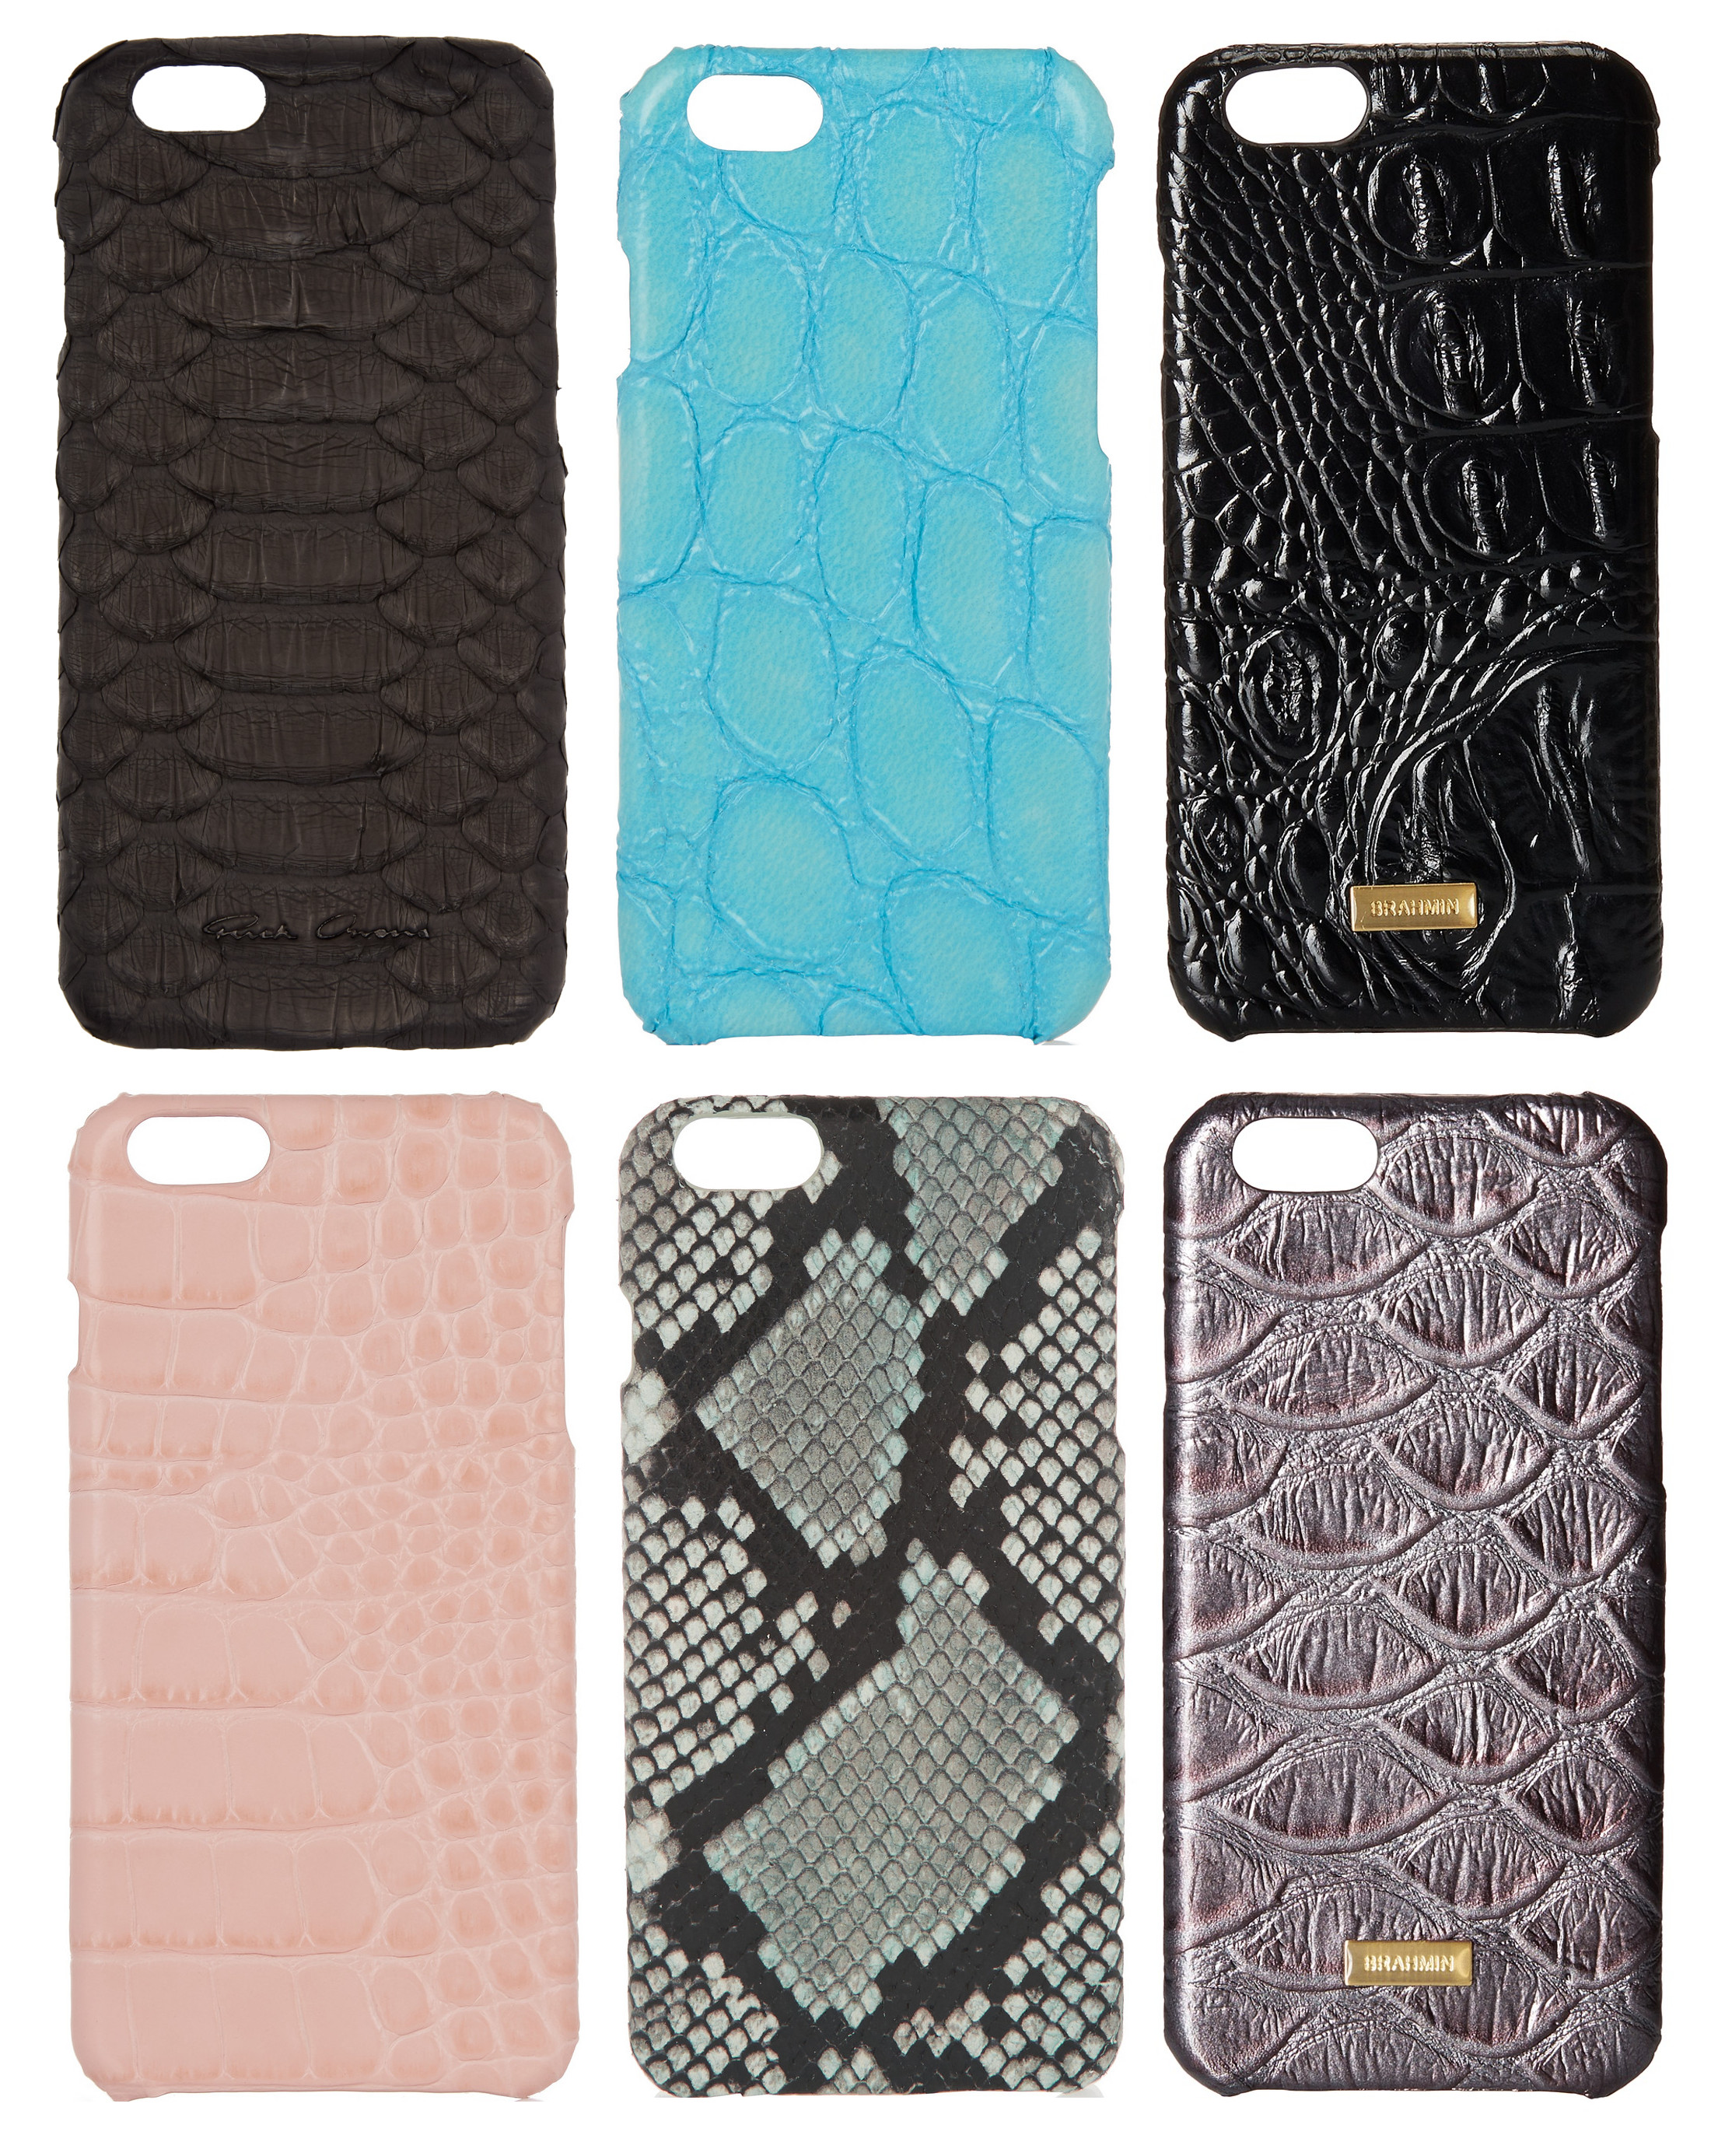 new product e2235 11d8a The Most Stunning Phone Cases | Lollipuff